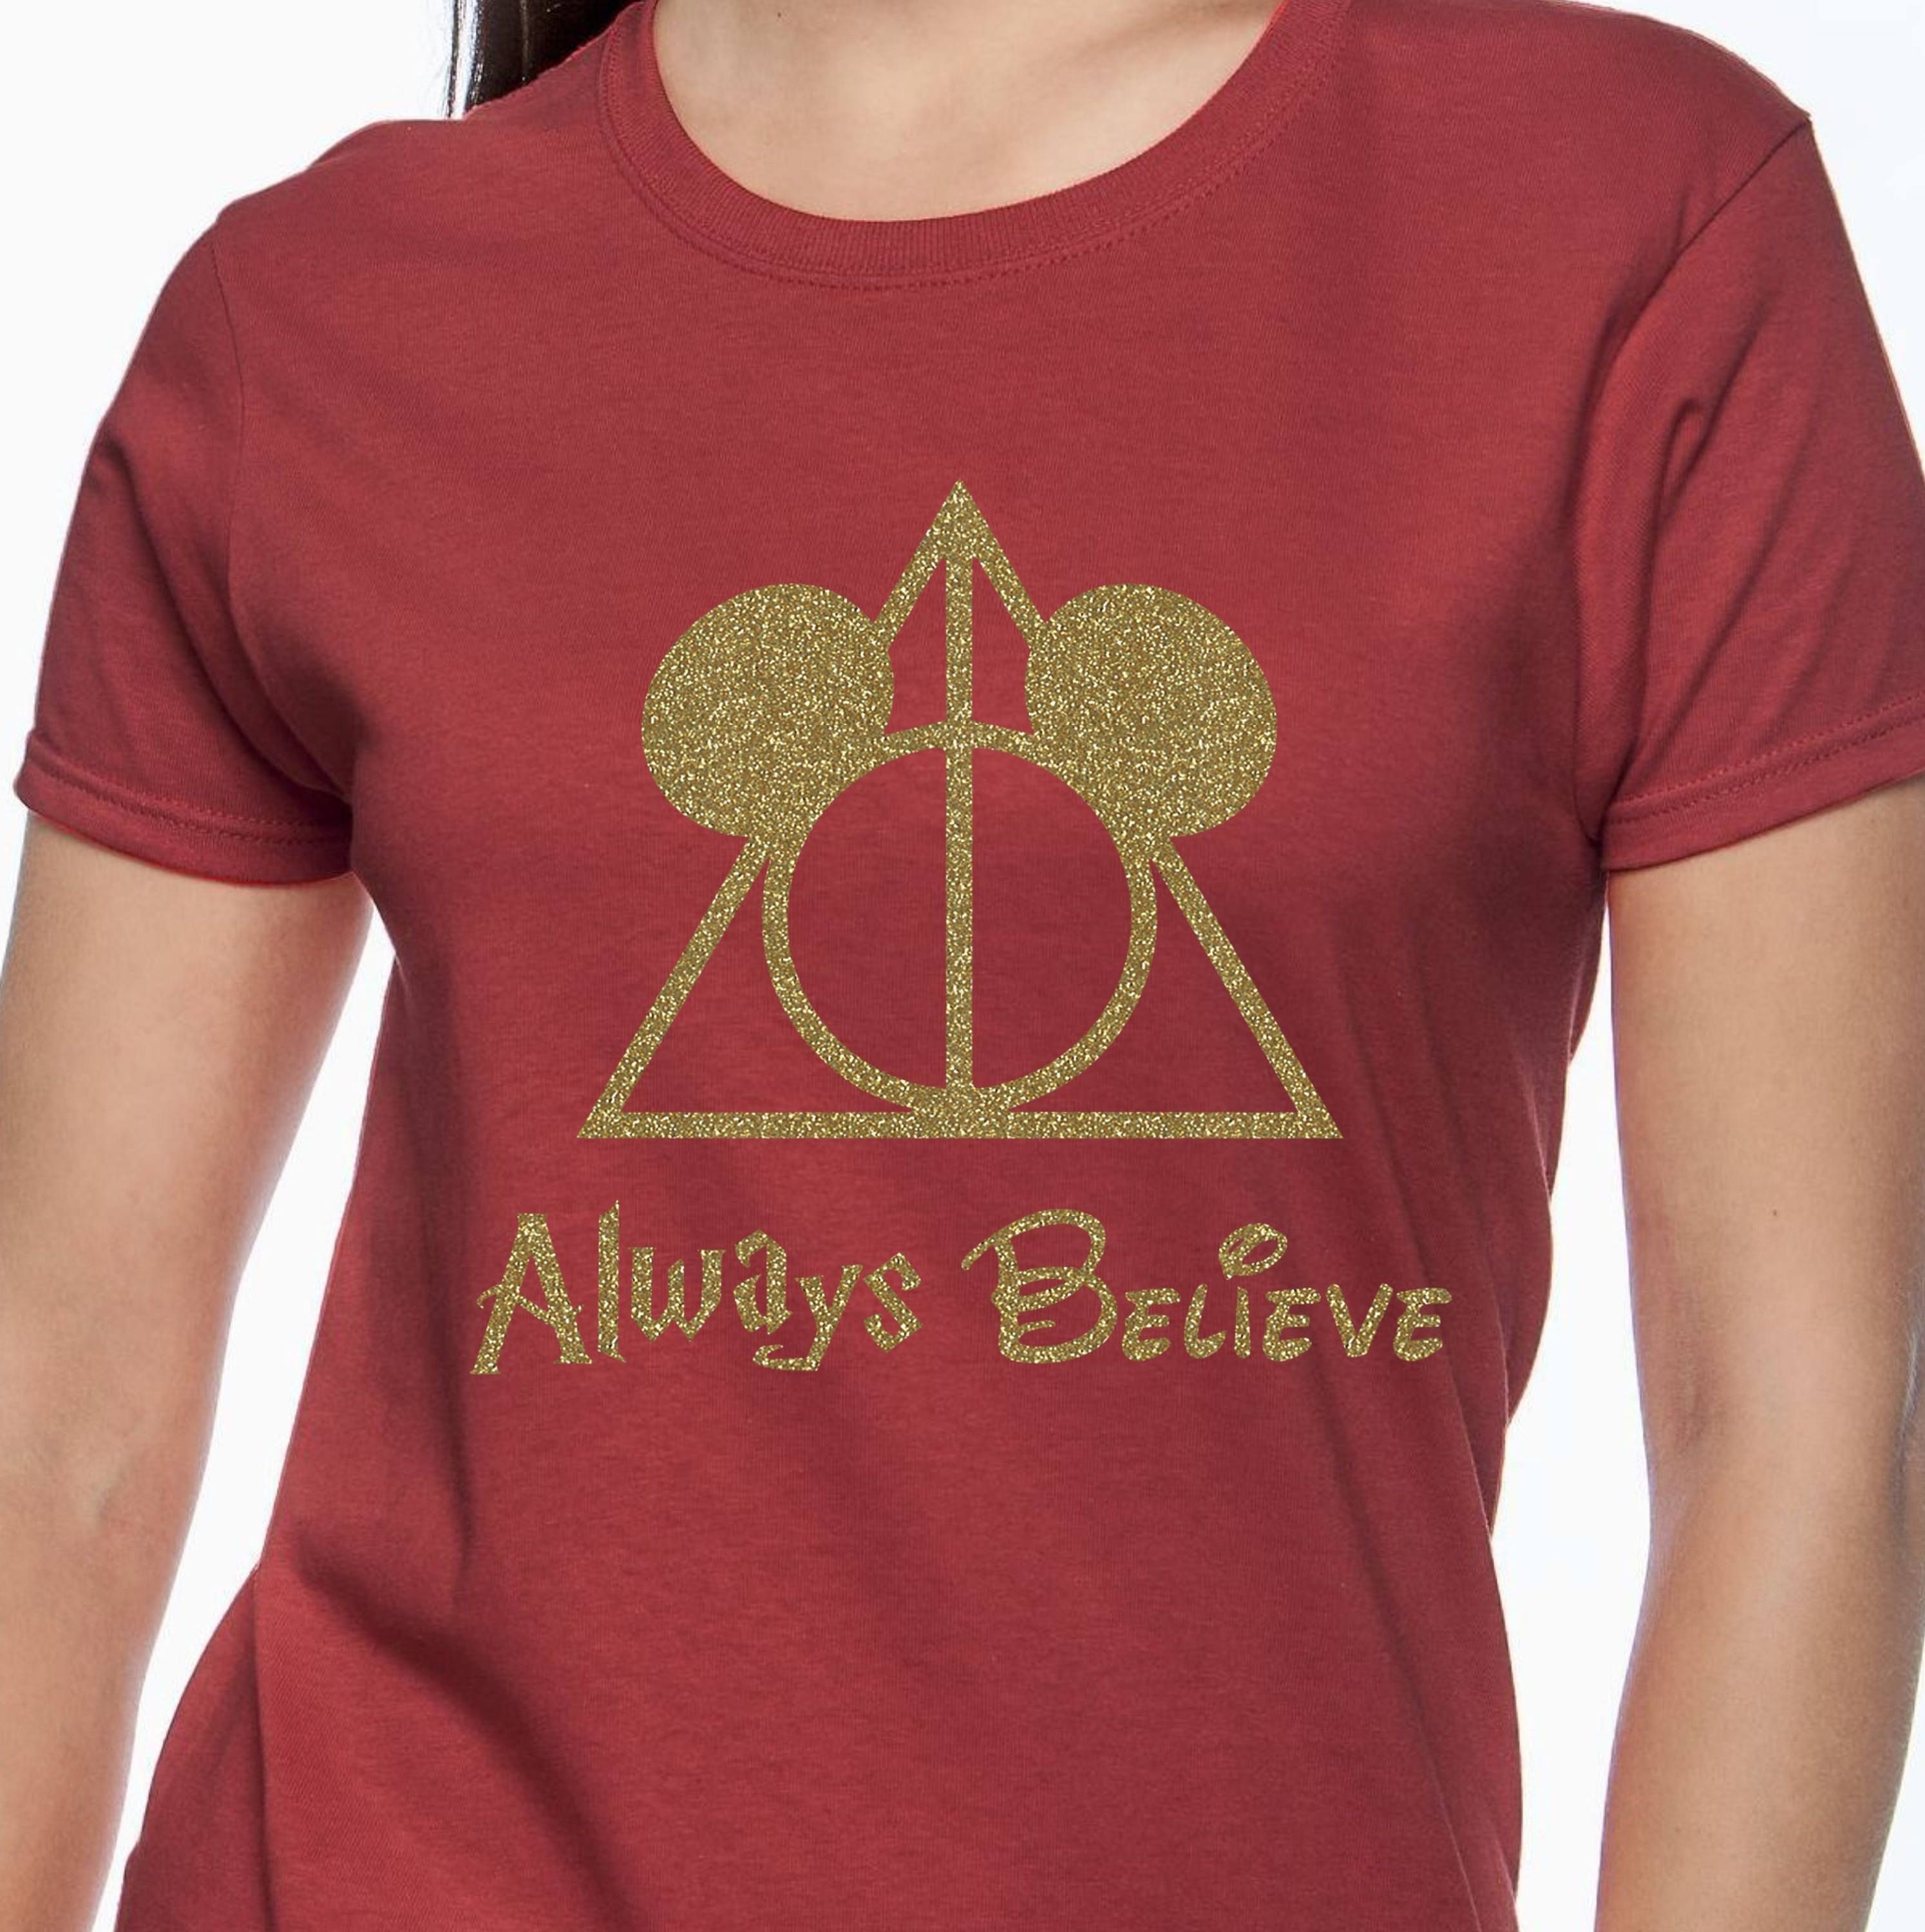 fdc4c9cfe Harry Potter Shirt, Disney Matching Vacation , Glitter, Hogwarts, for her,  for him, Harry T Shirt, Ladies, family vacation, youth, ...